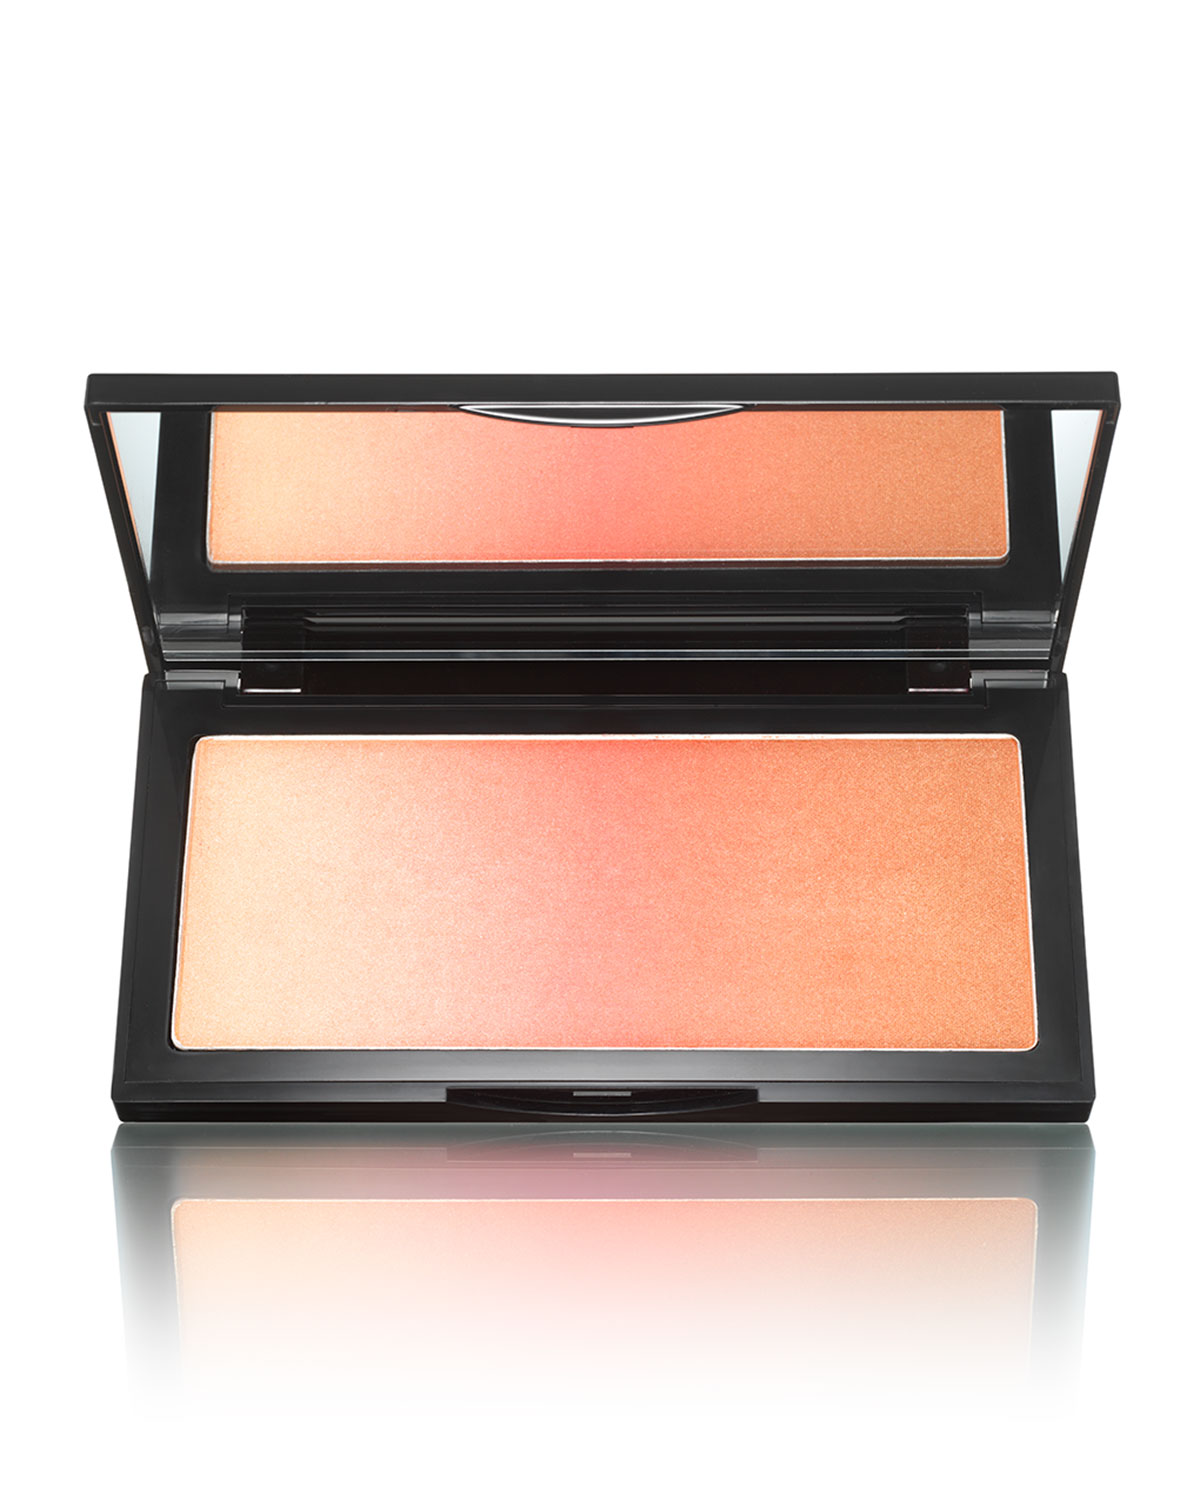 The Neo-Bronzer, Capri Cool Pink - Kevyn Aucoin